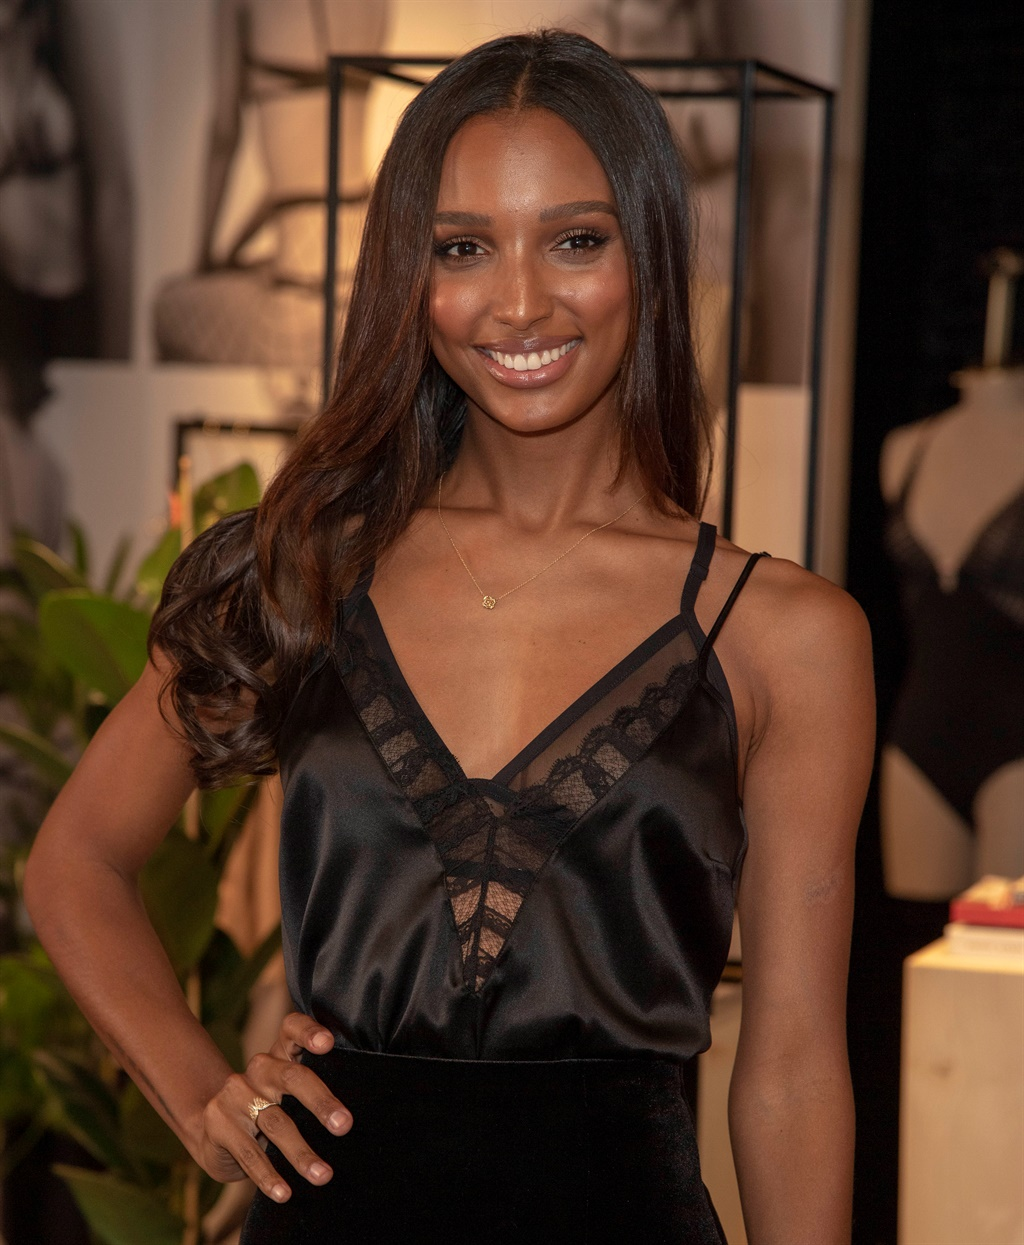 9dad6fe57e51 Victoria's Secret Angel says lingerie brand is empowering and makes ...